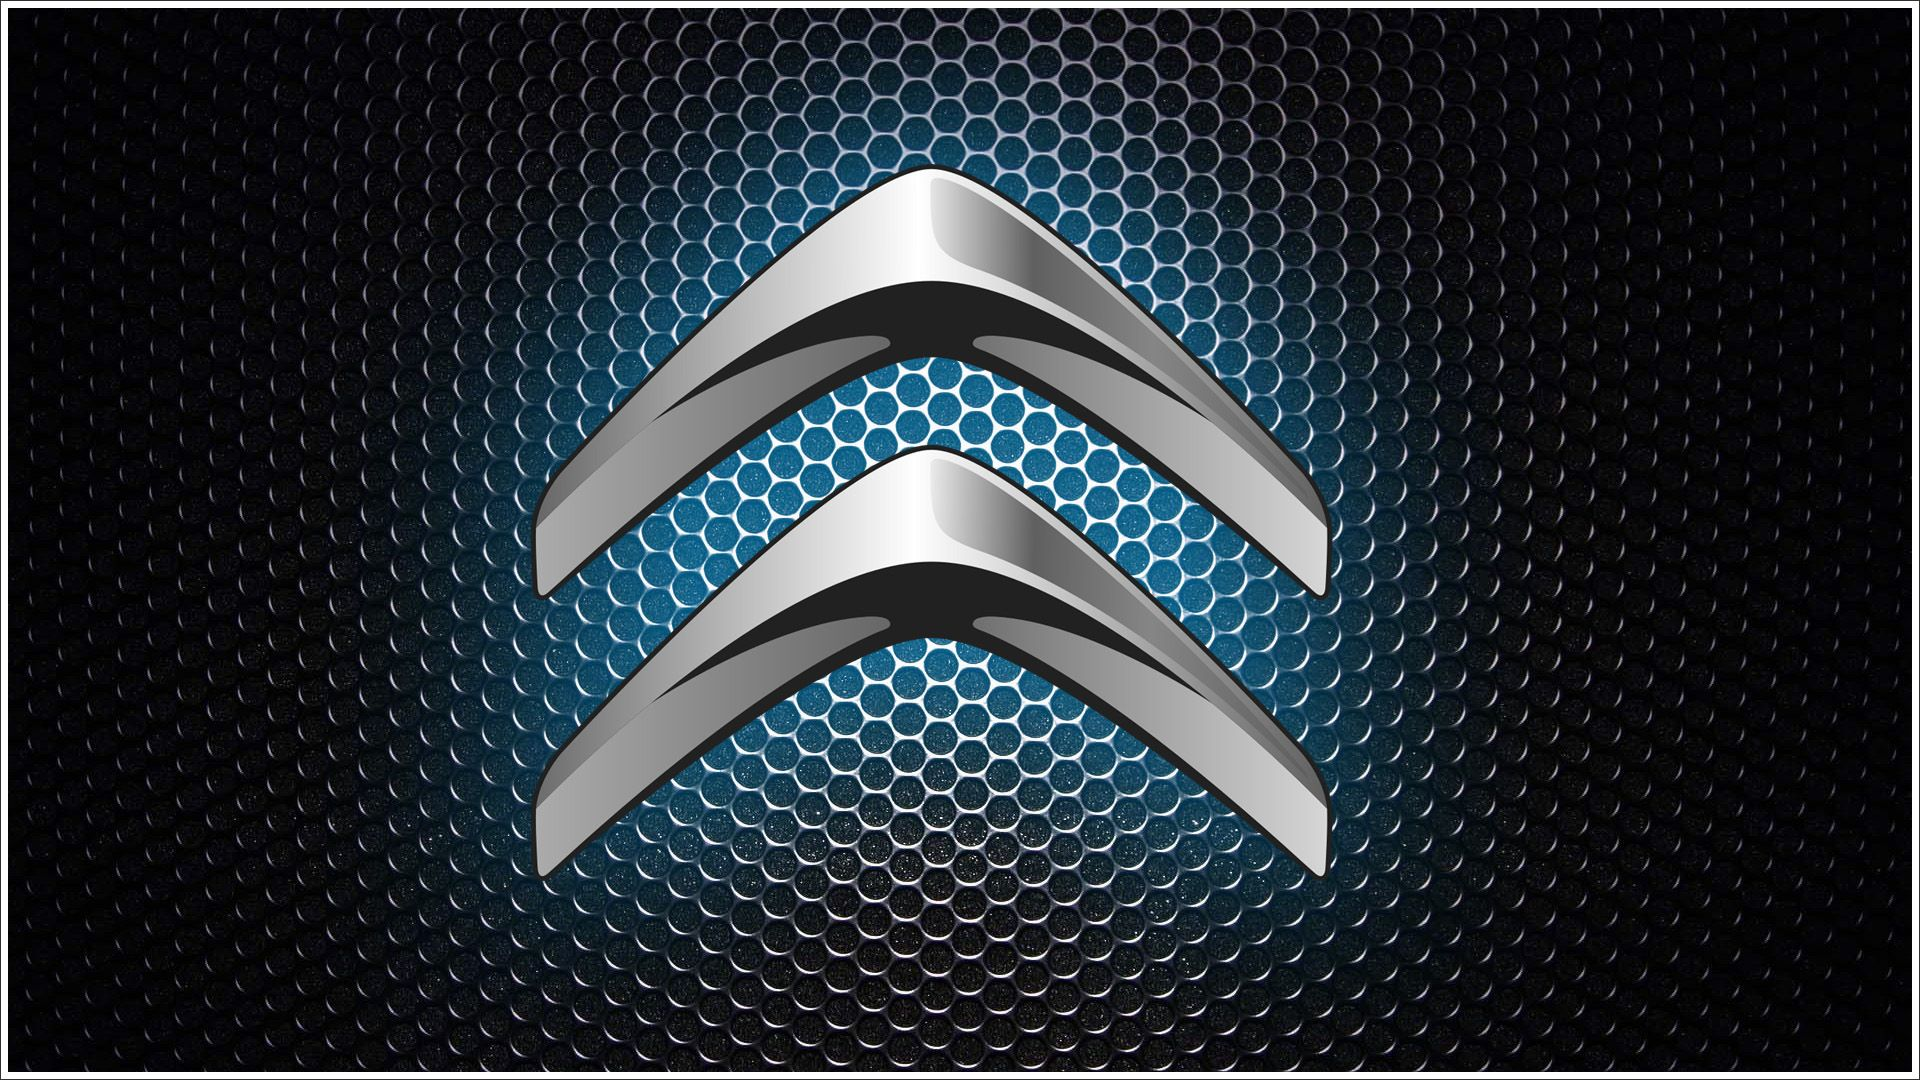 Citroen Logo - Citroën Logo Meaning and History, latest models | World Cars Brands